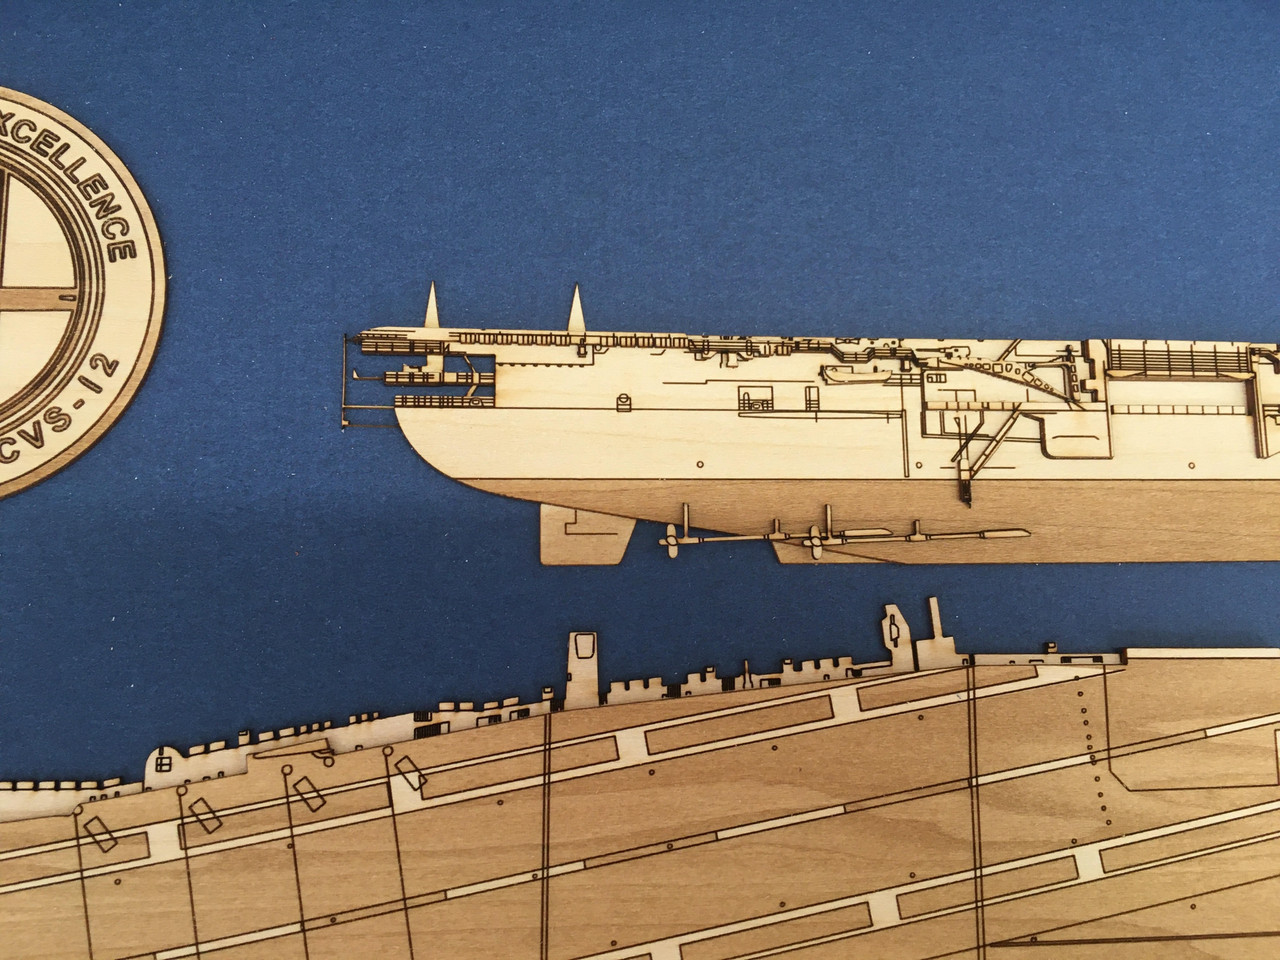 USS Leyete (CVA-13) Wood Model